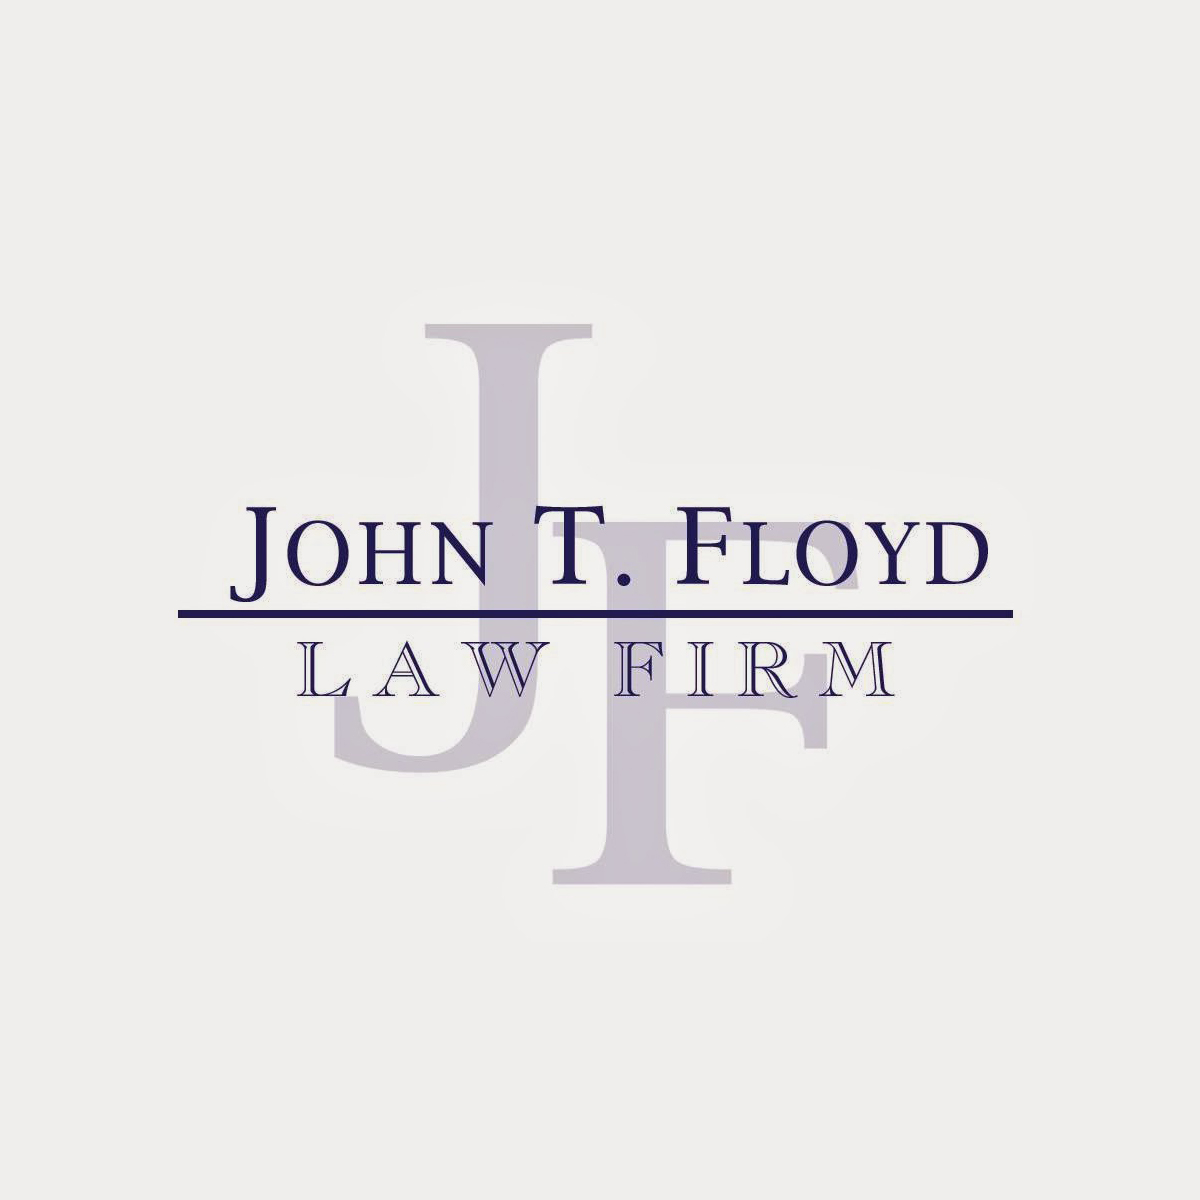 photo of John T. Floyd Law Firm